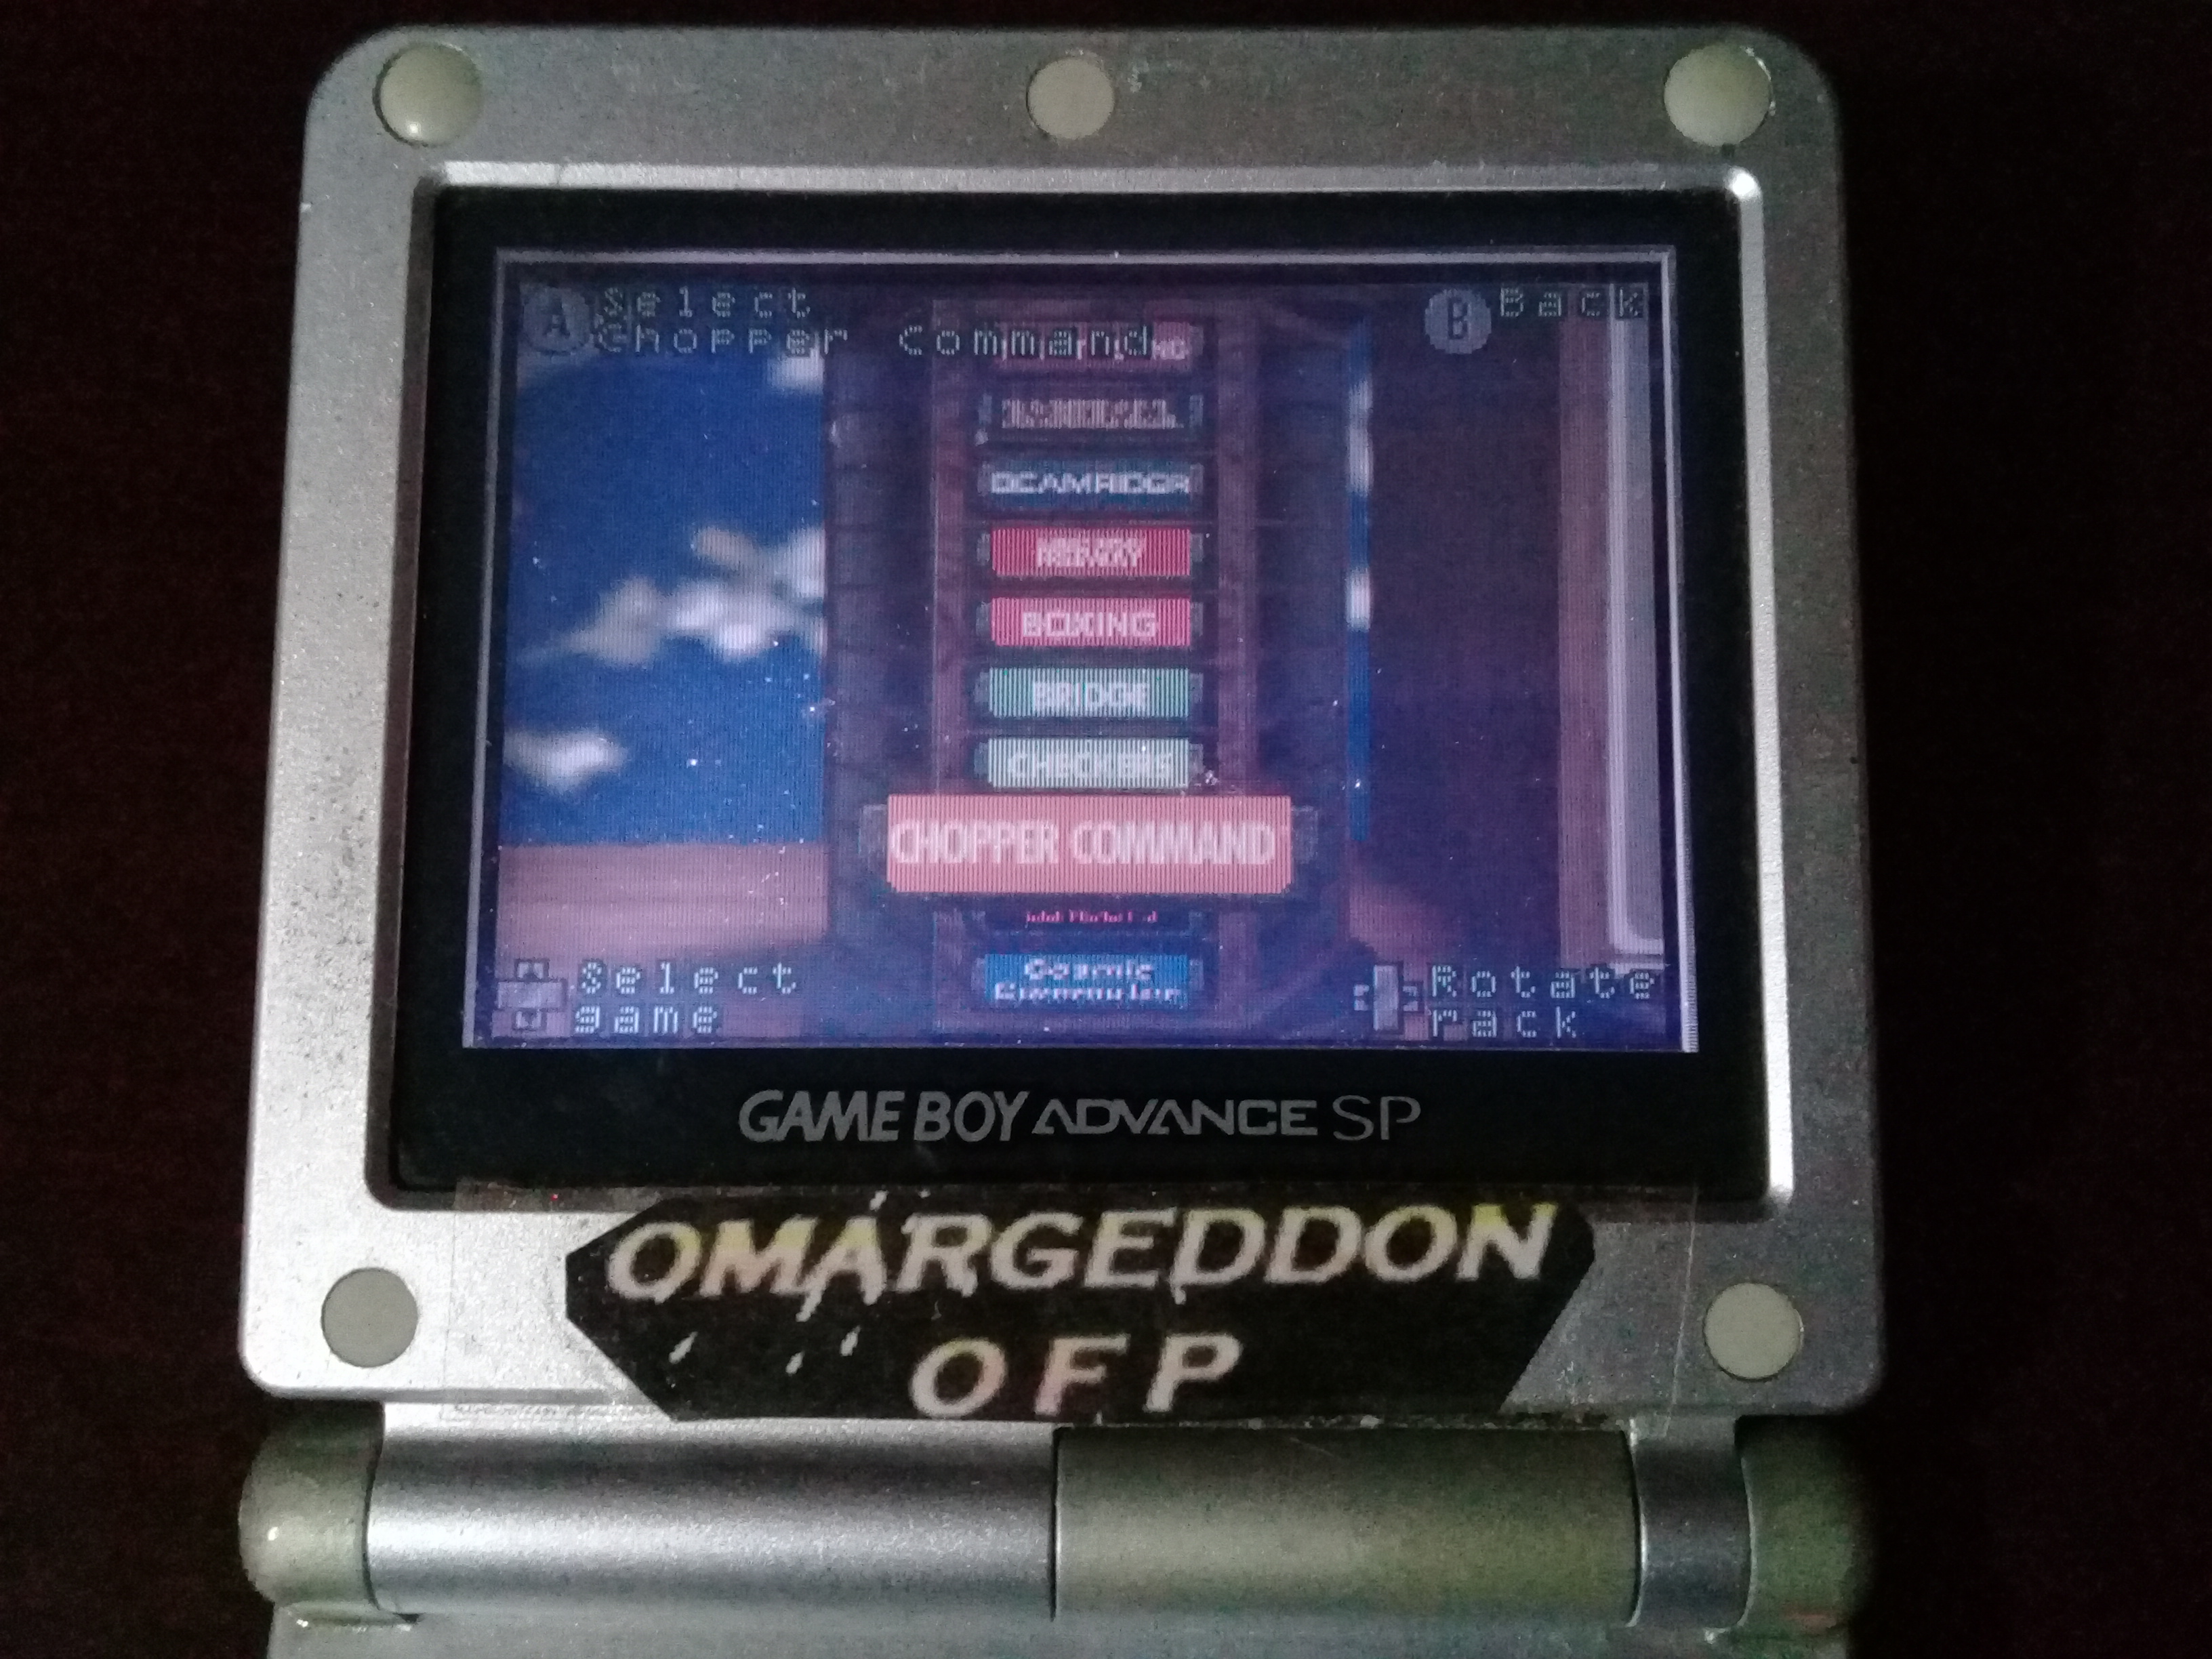 omargeddon: Activision Anthology: Chopper Command [Game 1B] (GBA) 16,400 points on 2019-09-15 11:51:32